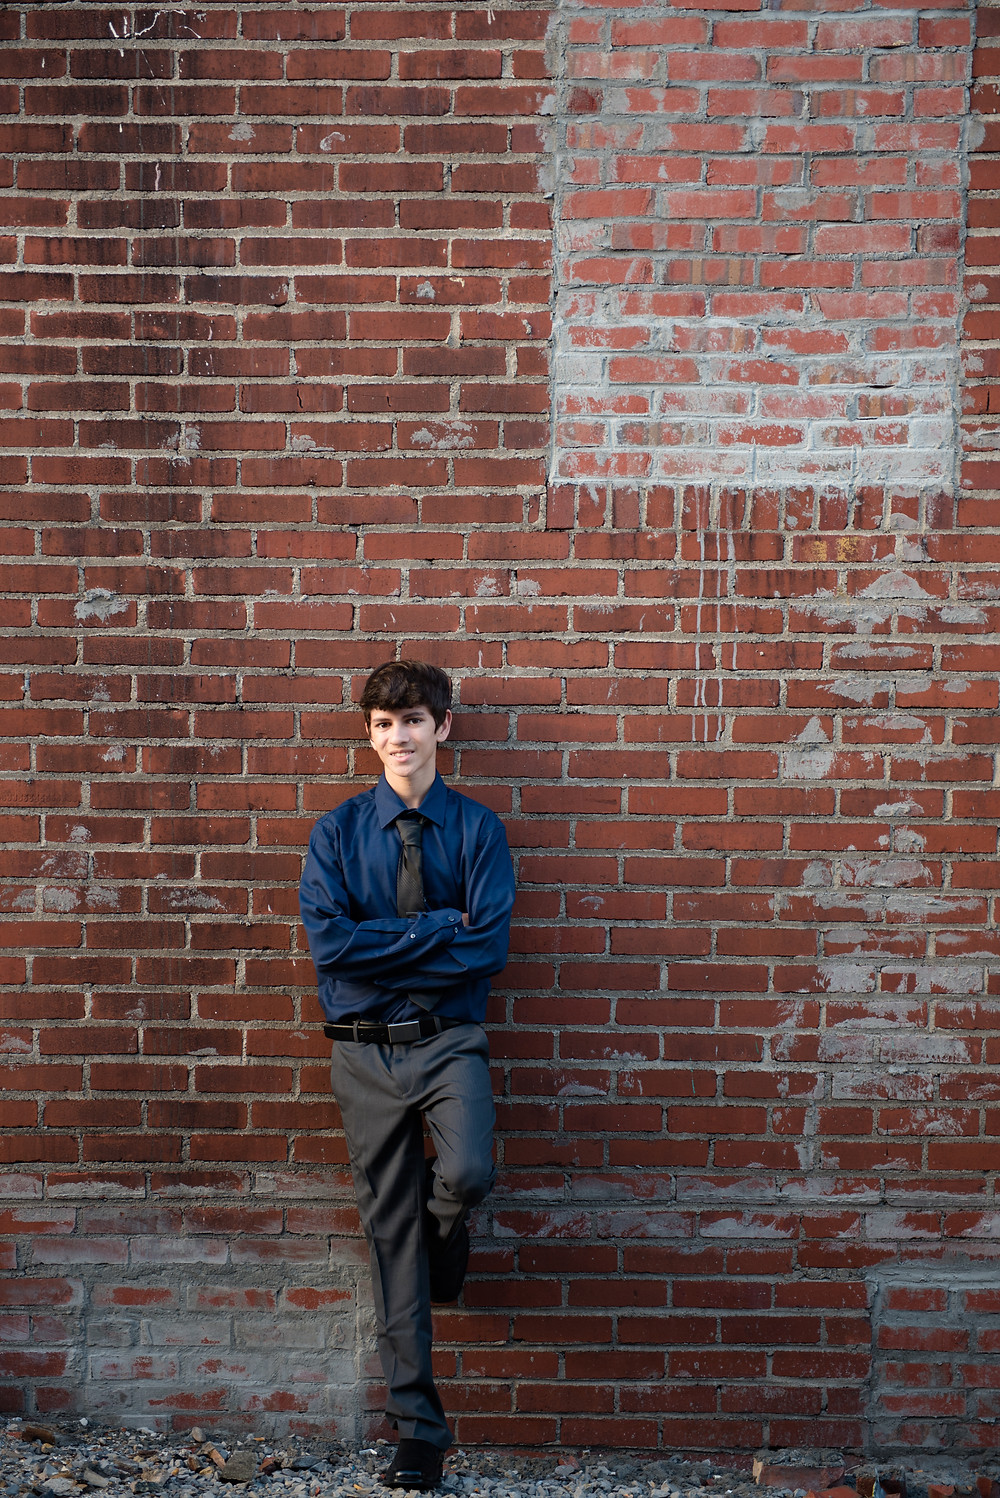 A guy's high school senior pictures in front of a brick wall near Pittsburgh.